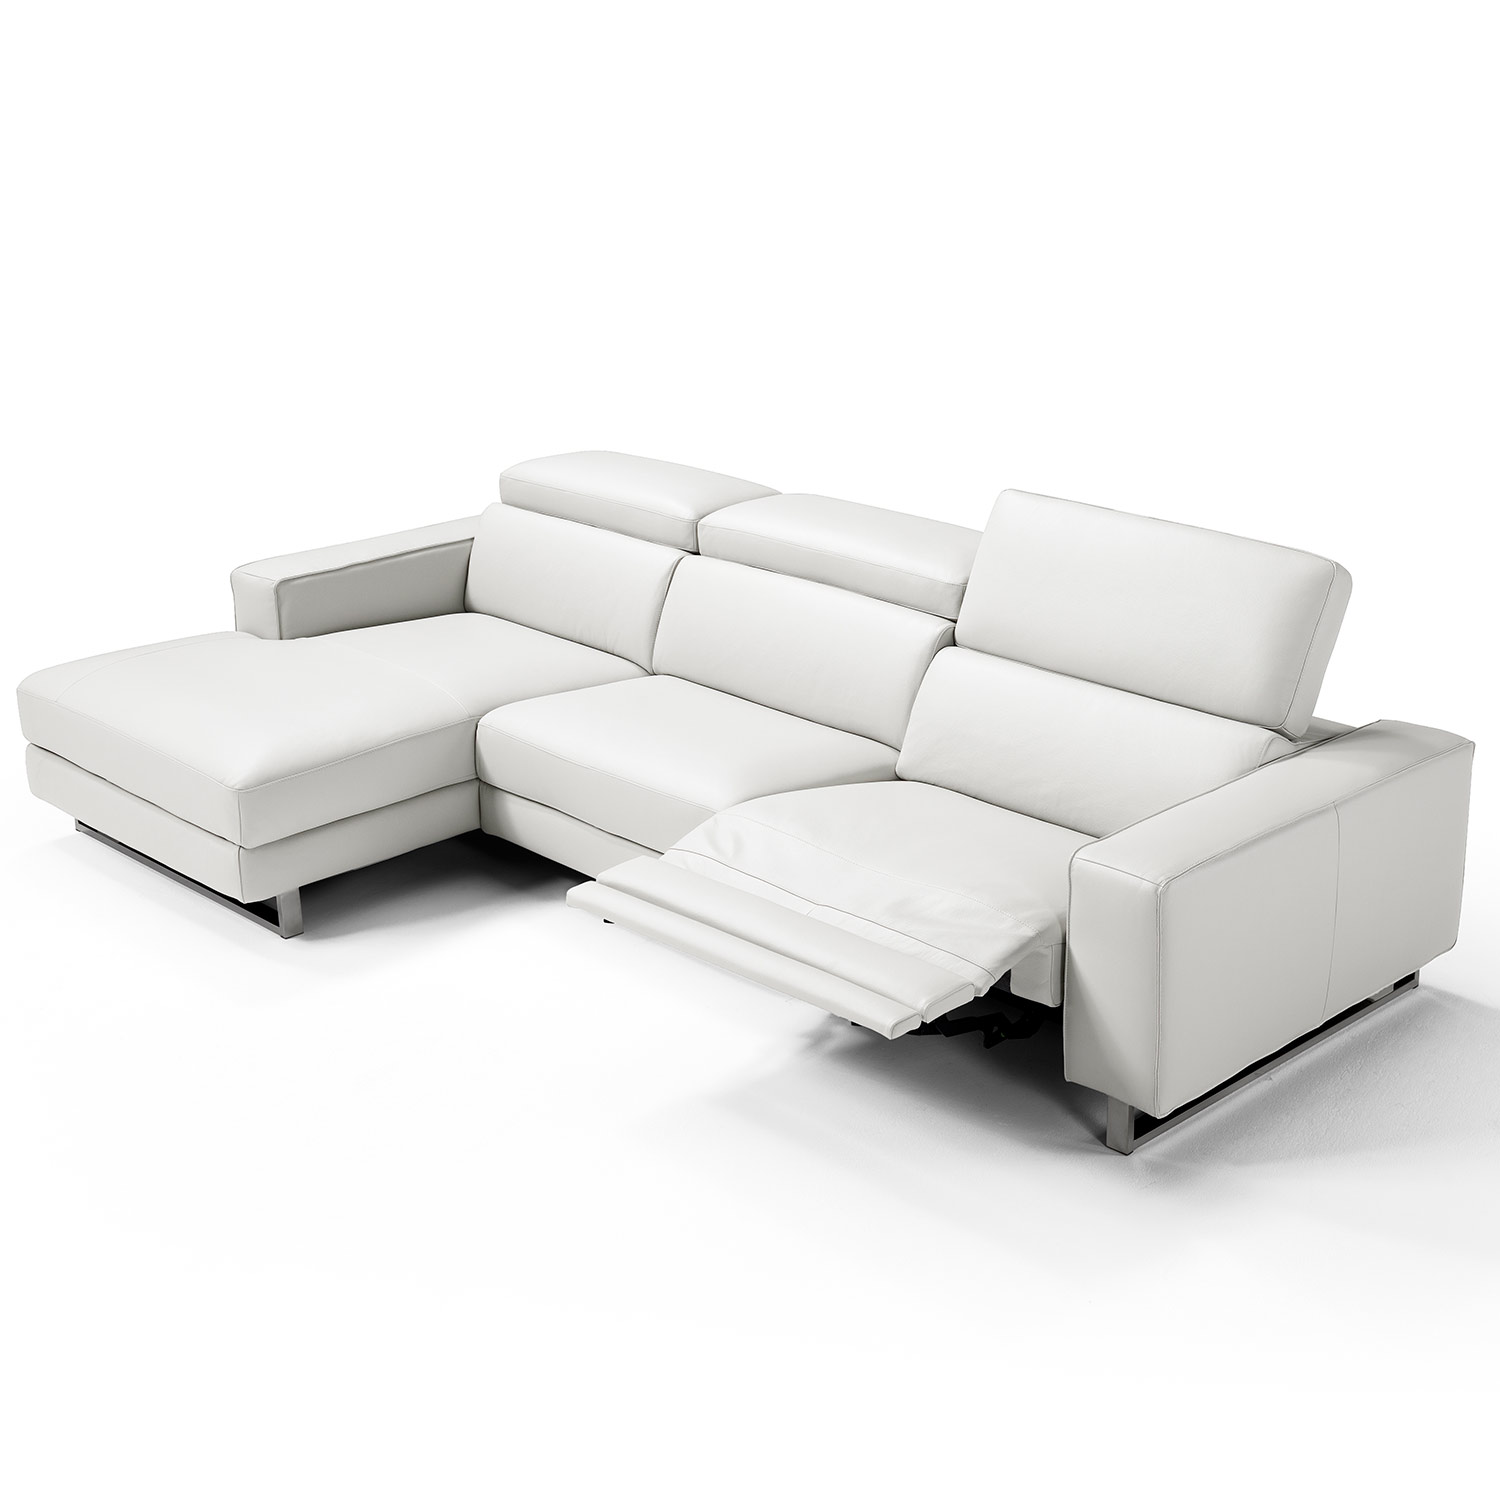 Whiteline Imports SL1403L WHT Augusto Sectional Sofa w Chaise on